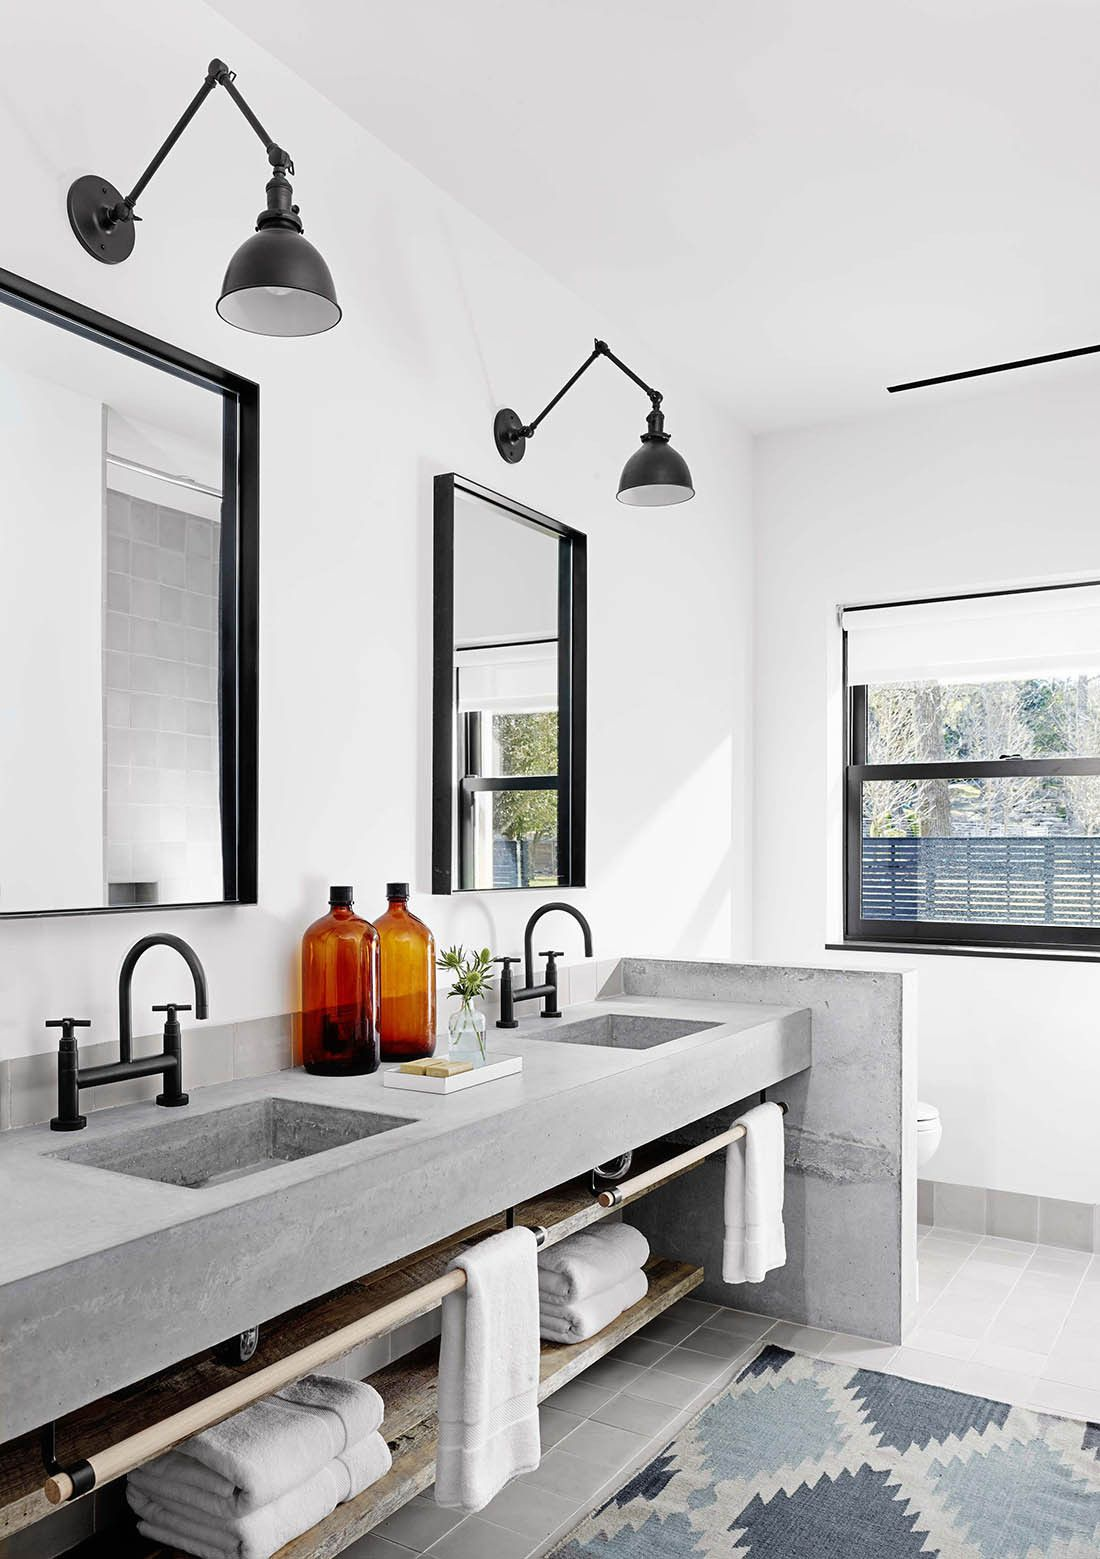 Gallery of Austin Home / Aamodt / Plumb Architects - 11 | Baños ...